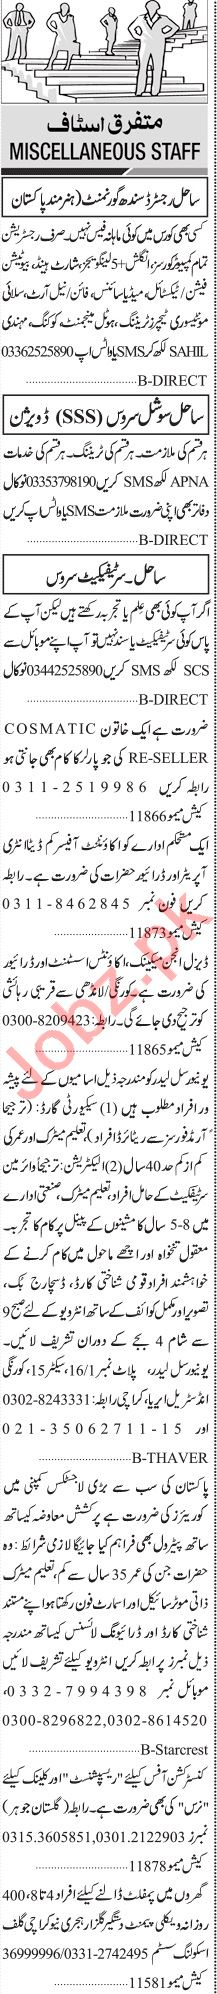 Jang Sunday Classified Ads 5th Sep 2021 for Multiple Staff